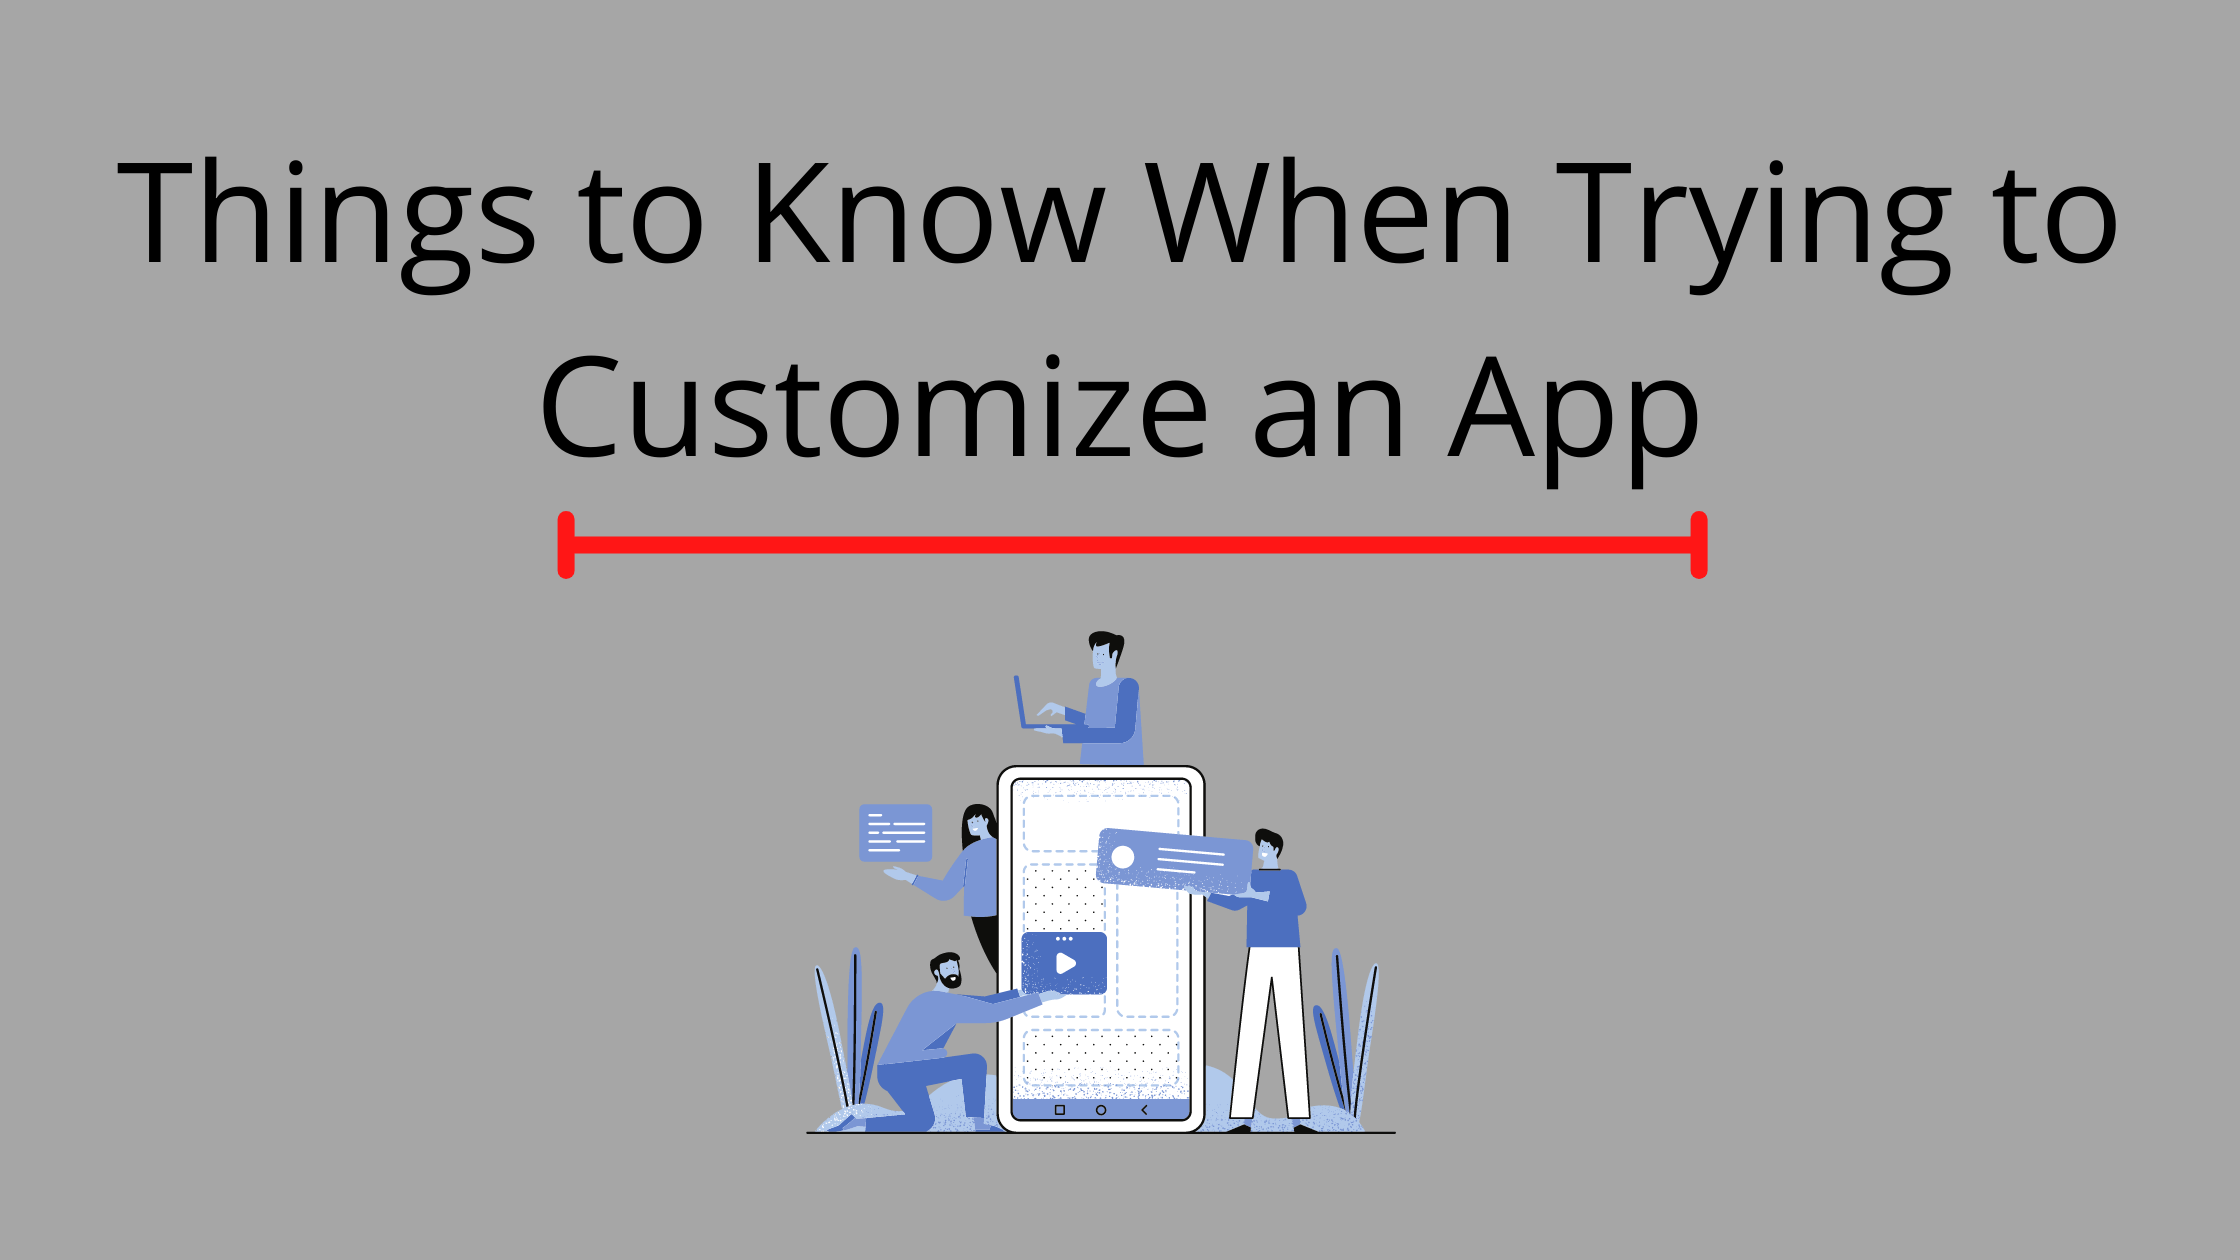 Things to Know When Trying to Customize an App